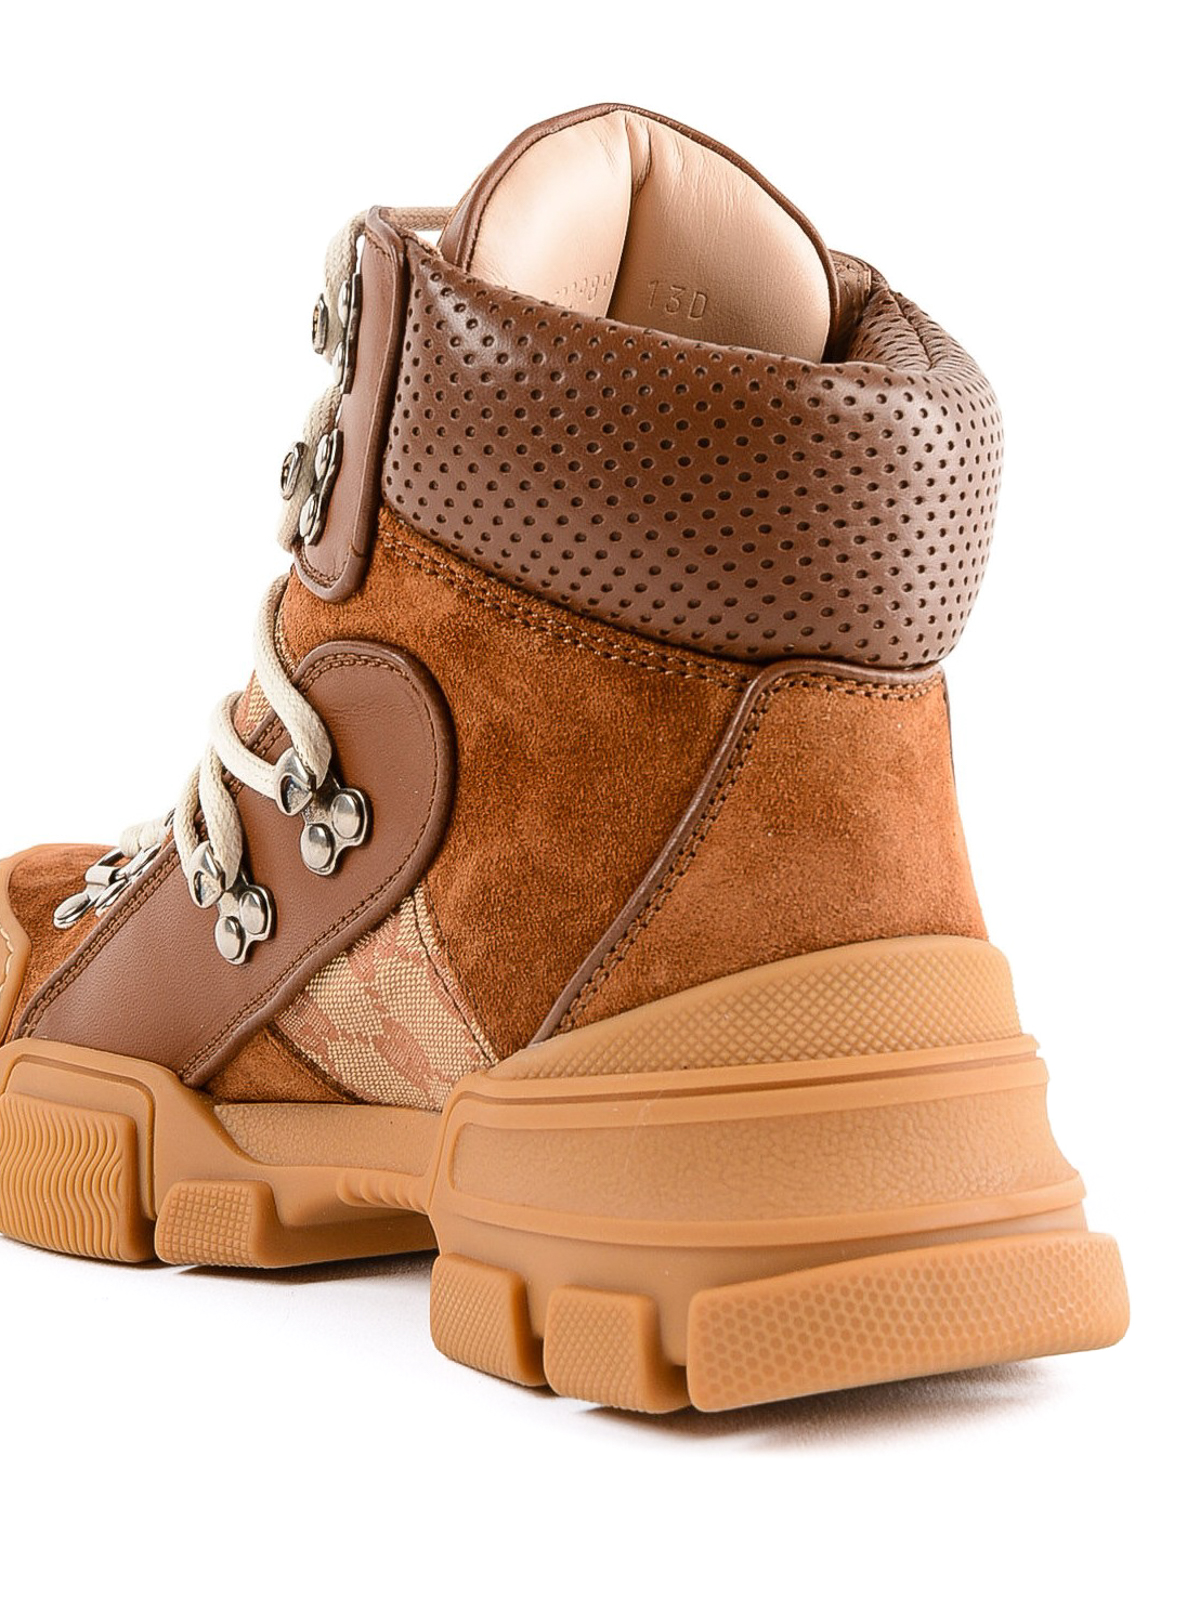 28214cf8c0a Gucci - Flashtrek GG hiking booties - ankle boots - 5229890P3102590